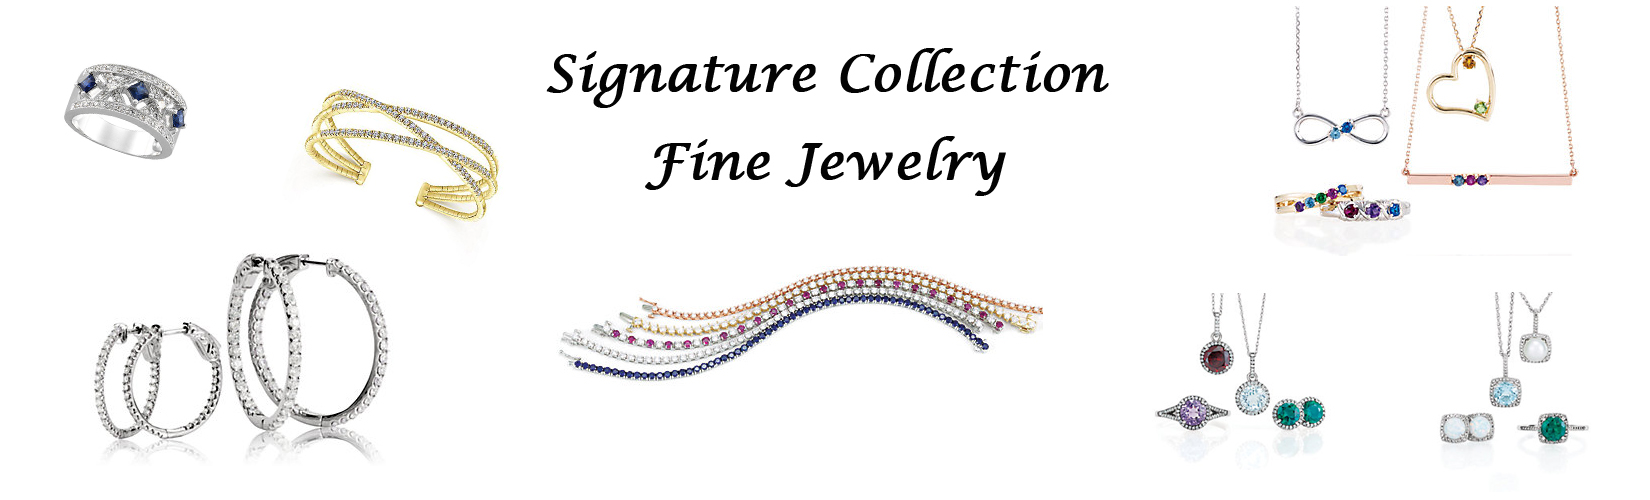 Emerald Lady Jewelry Signature Collection